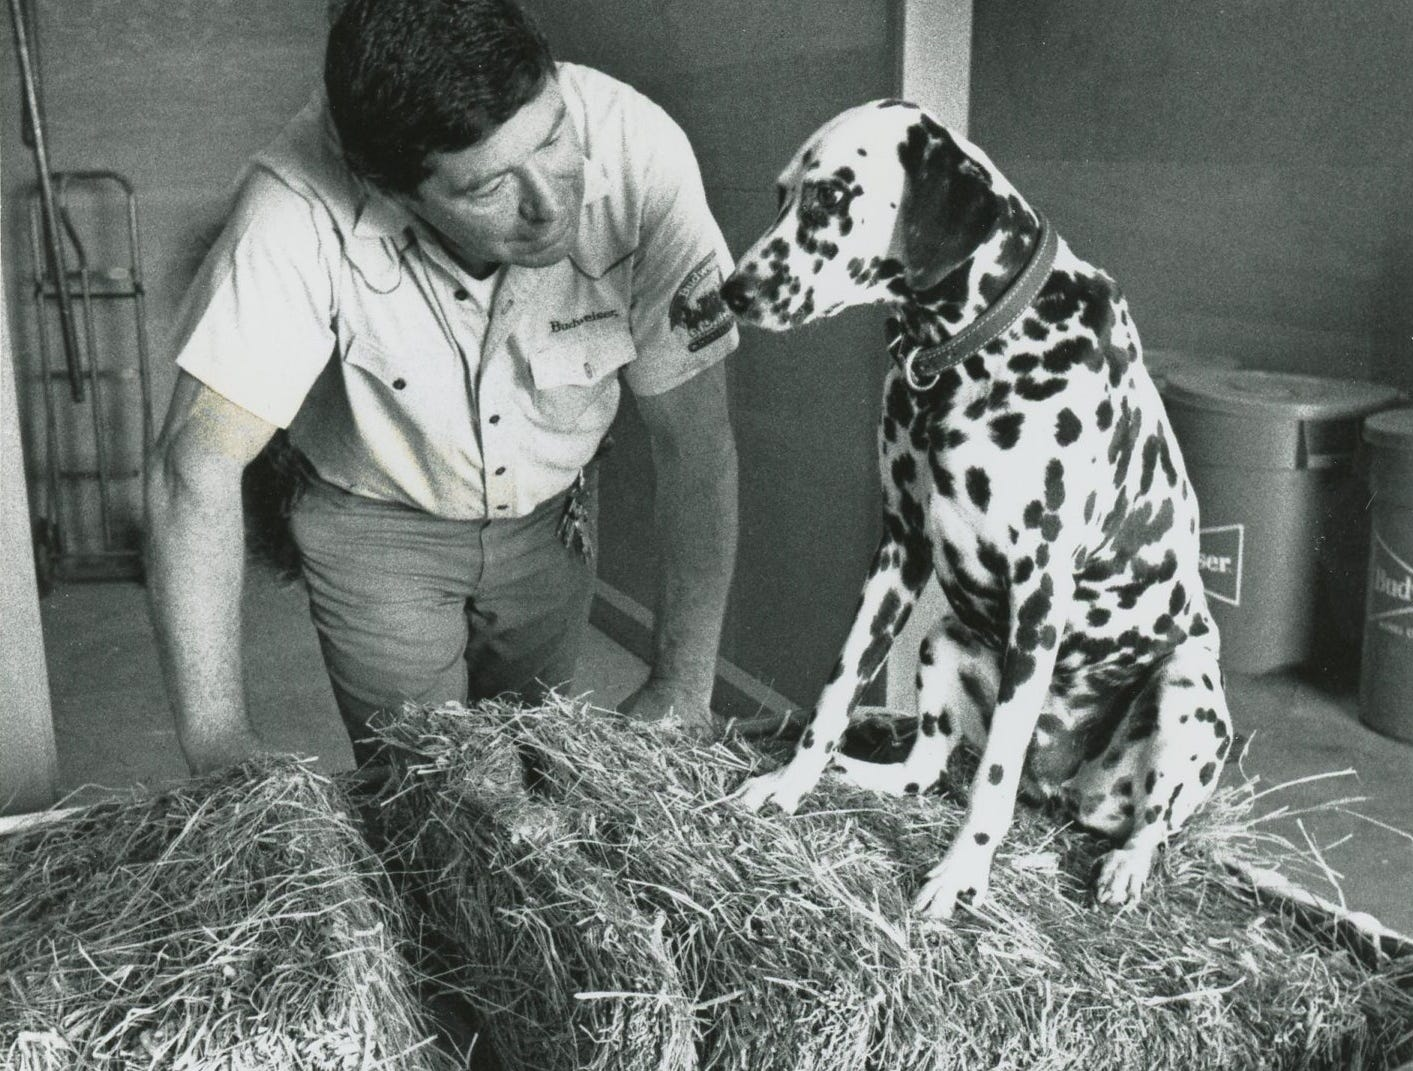 Noel Picard chats with the stable mascot, Bud, at Anheuser-Busch in Fort Collins in September 1990.